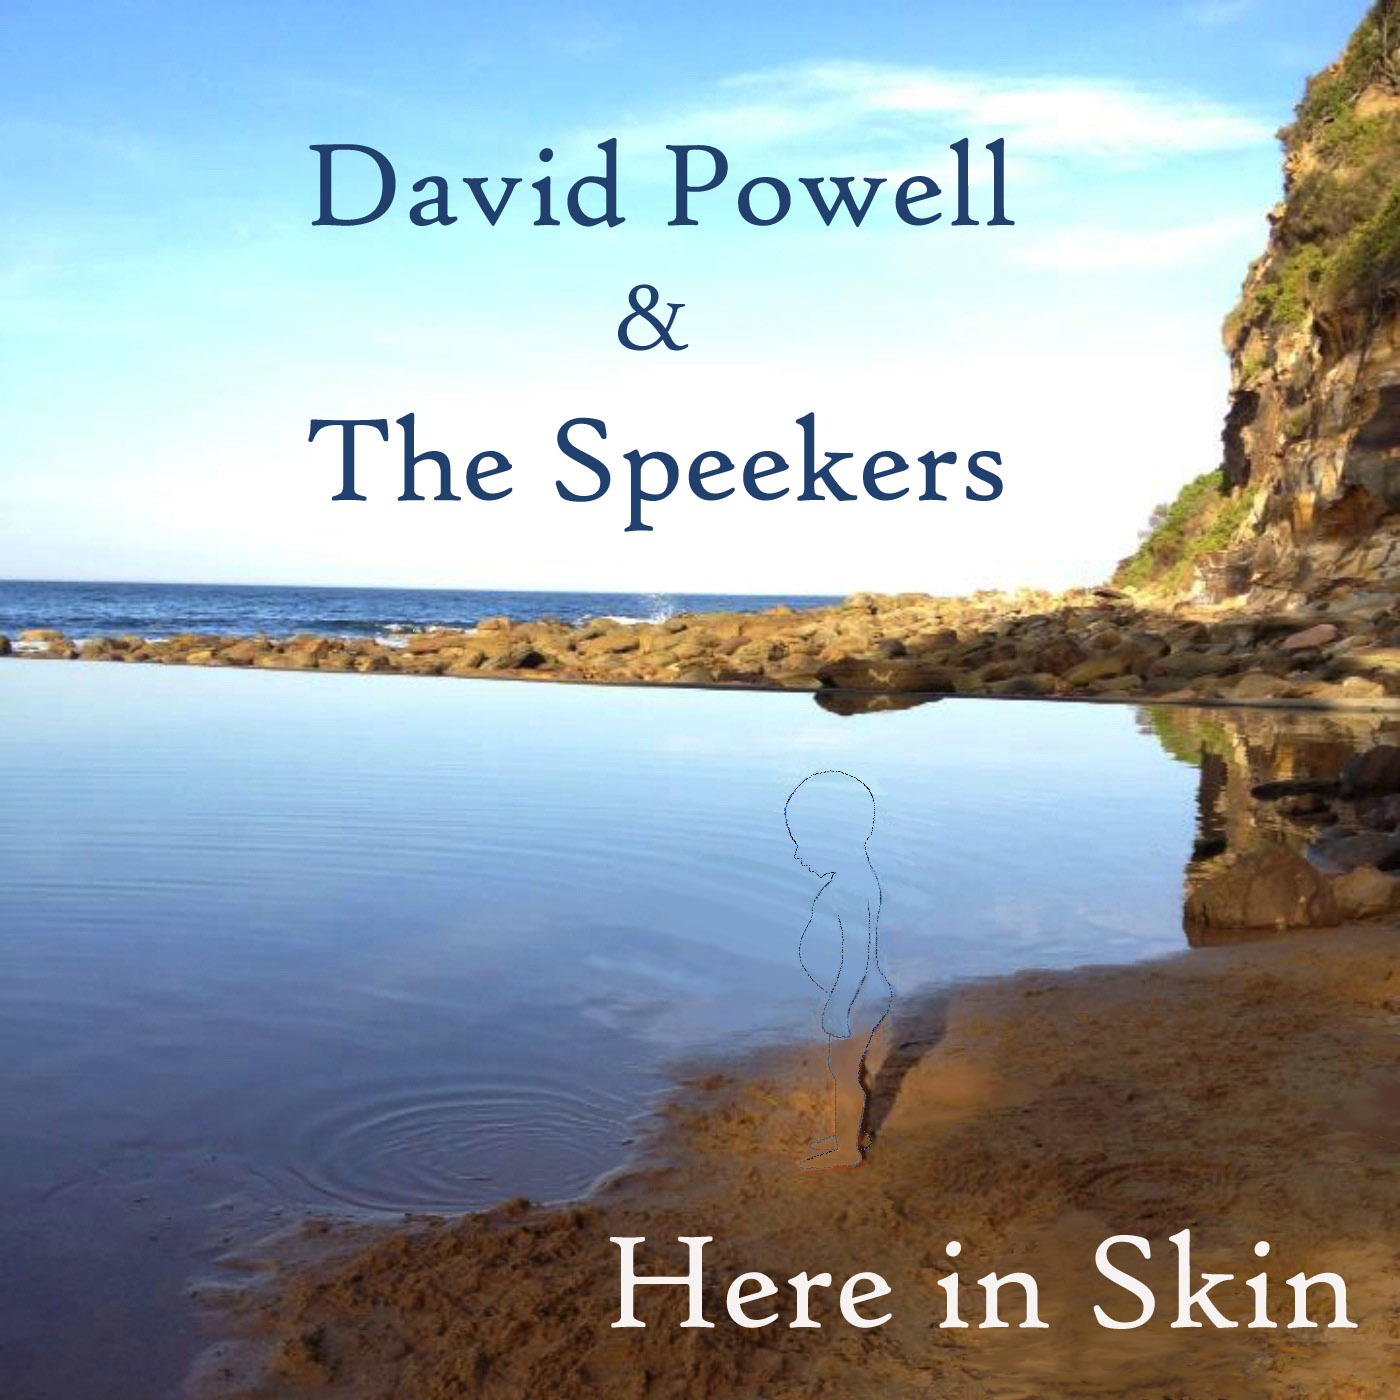 David Powell and the Speekers: Rising Sensation of New Age and Alternative Music